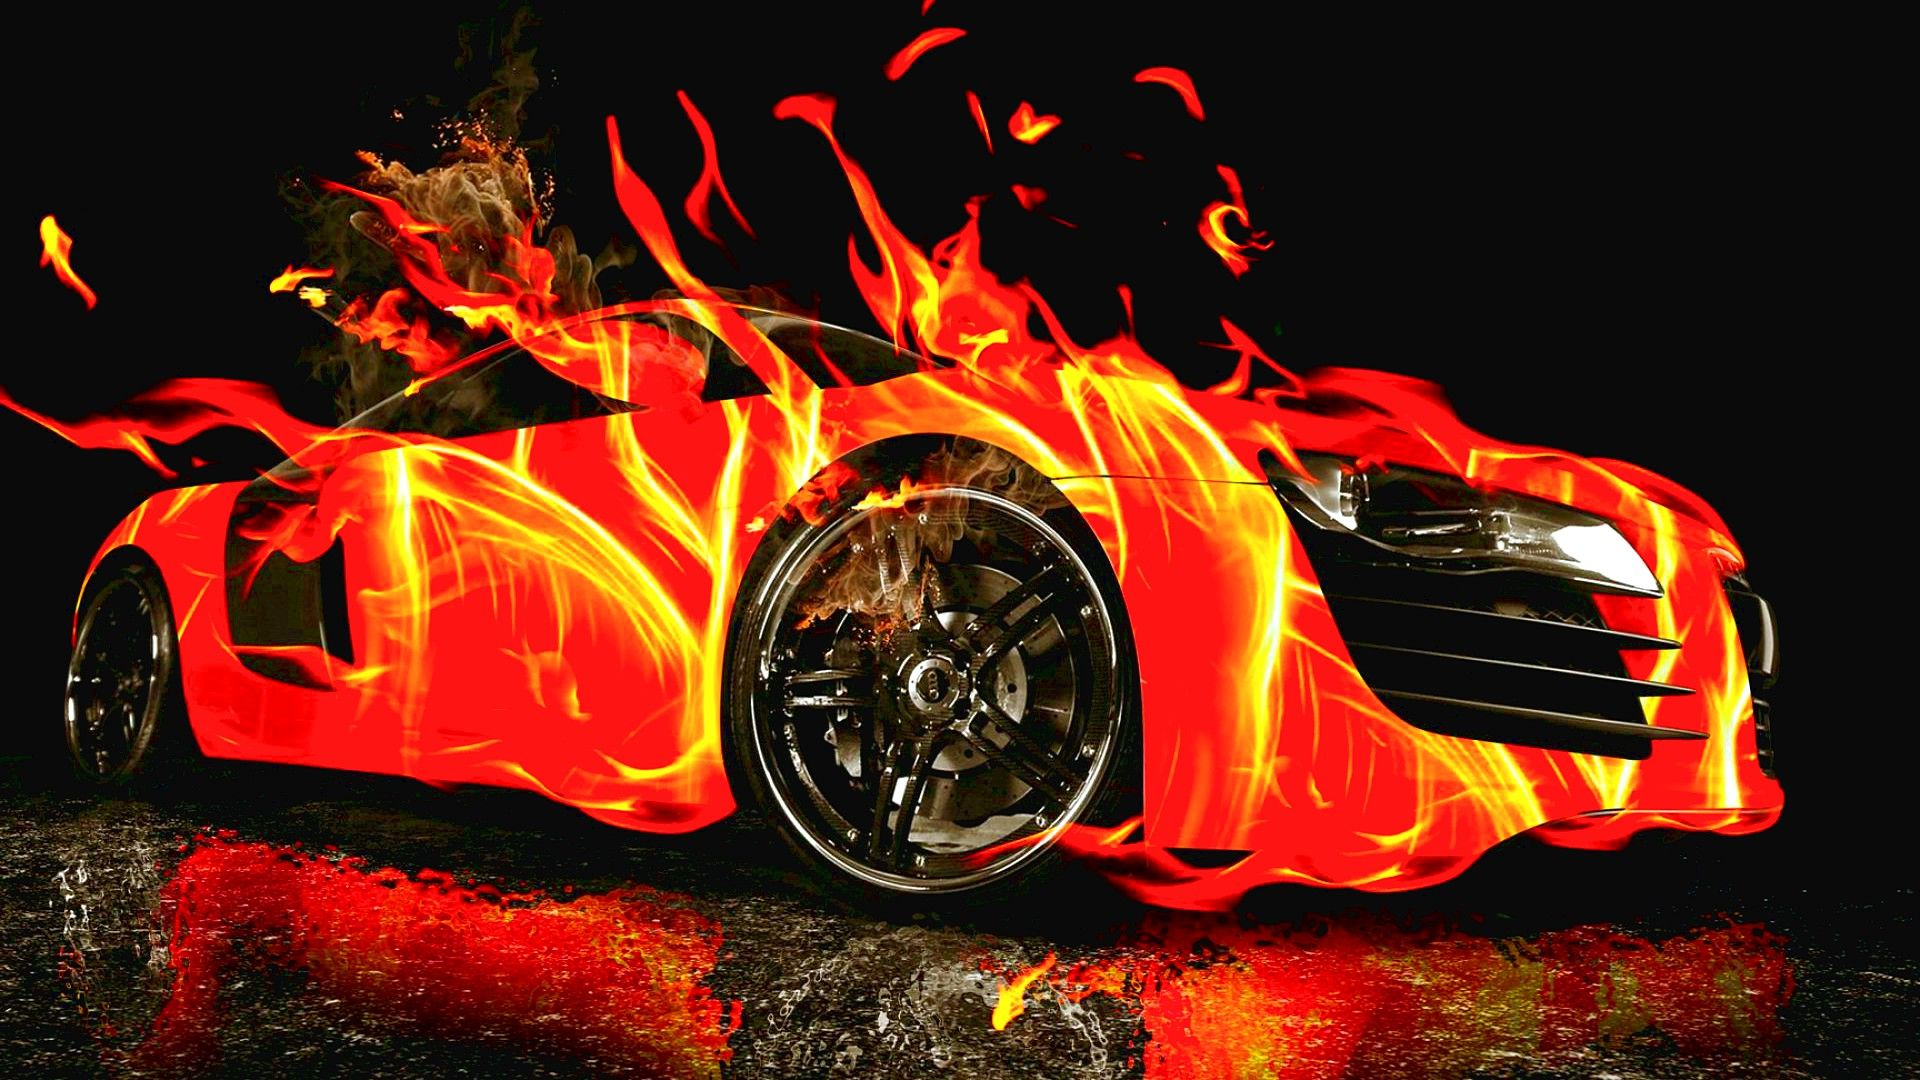 Pin By Abdidabar123 On Naruto Cool Car Pictures Car Wallpapers Cool Cars